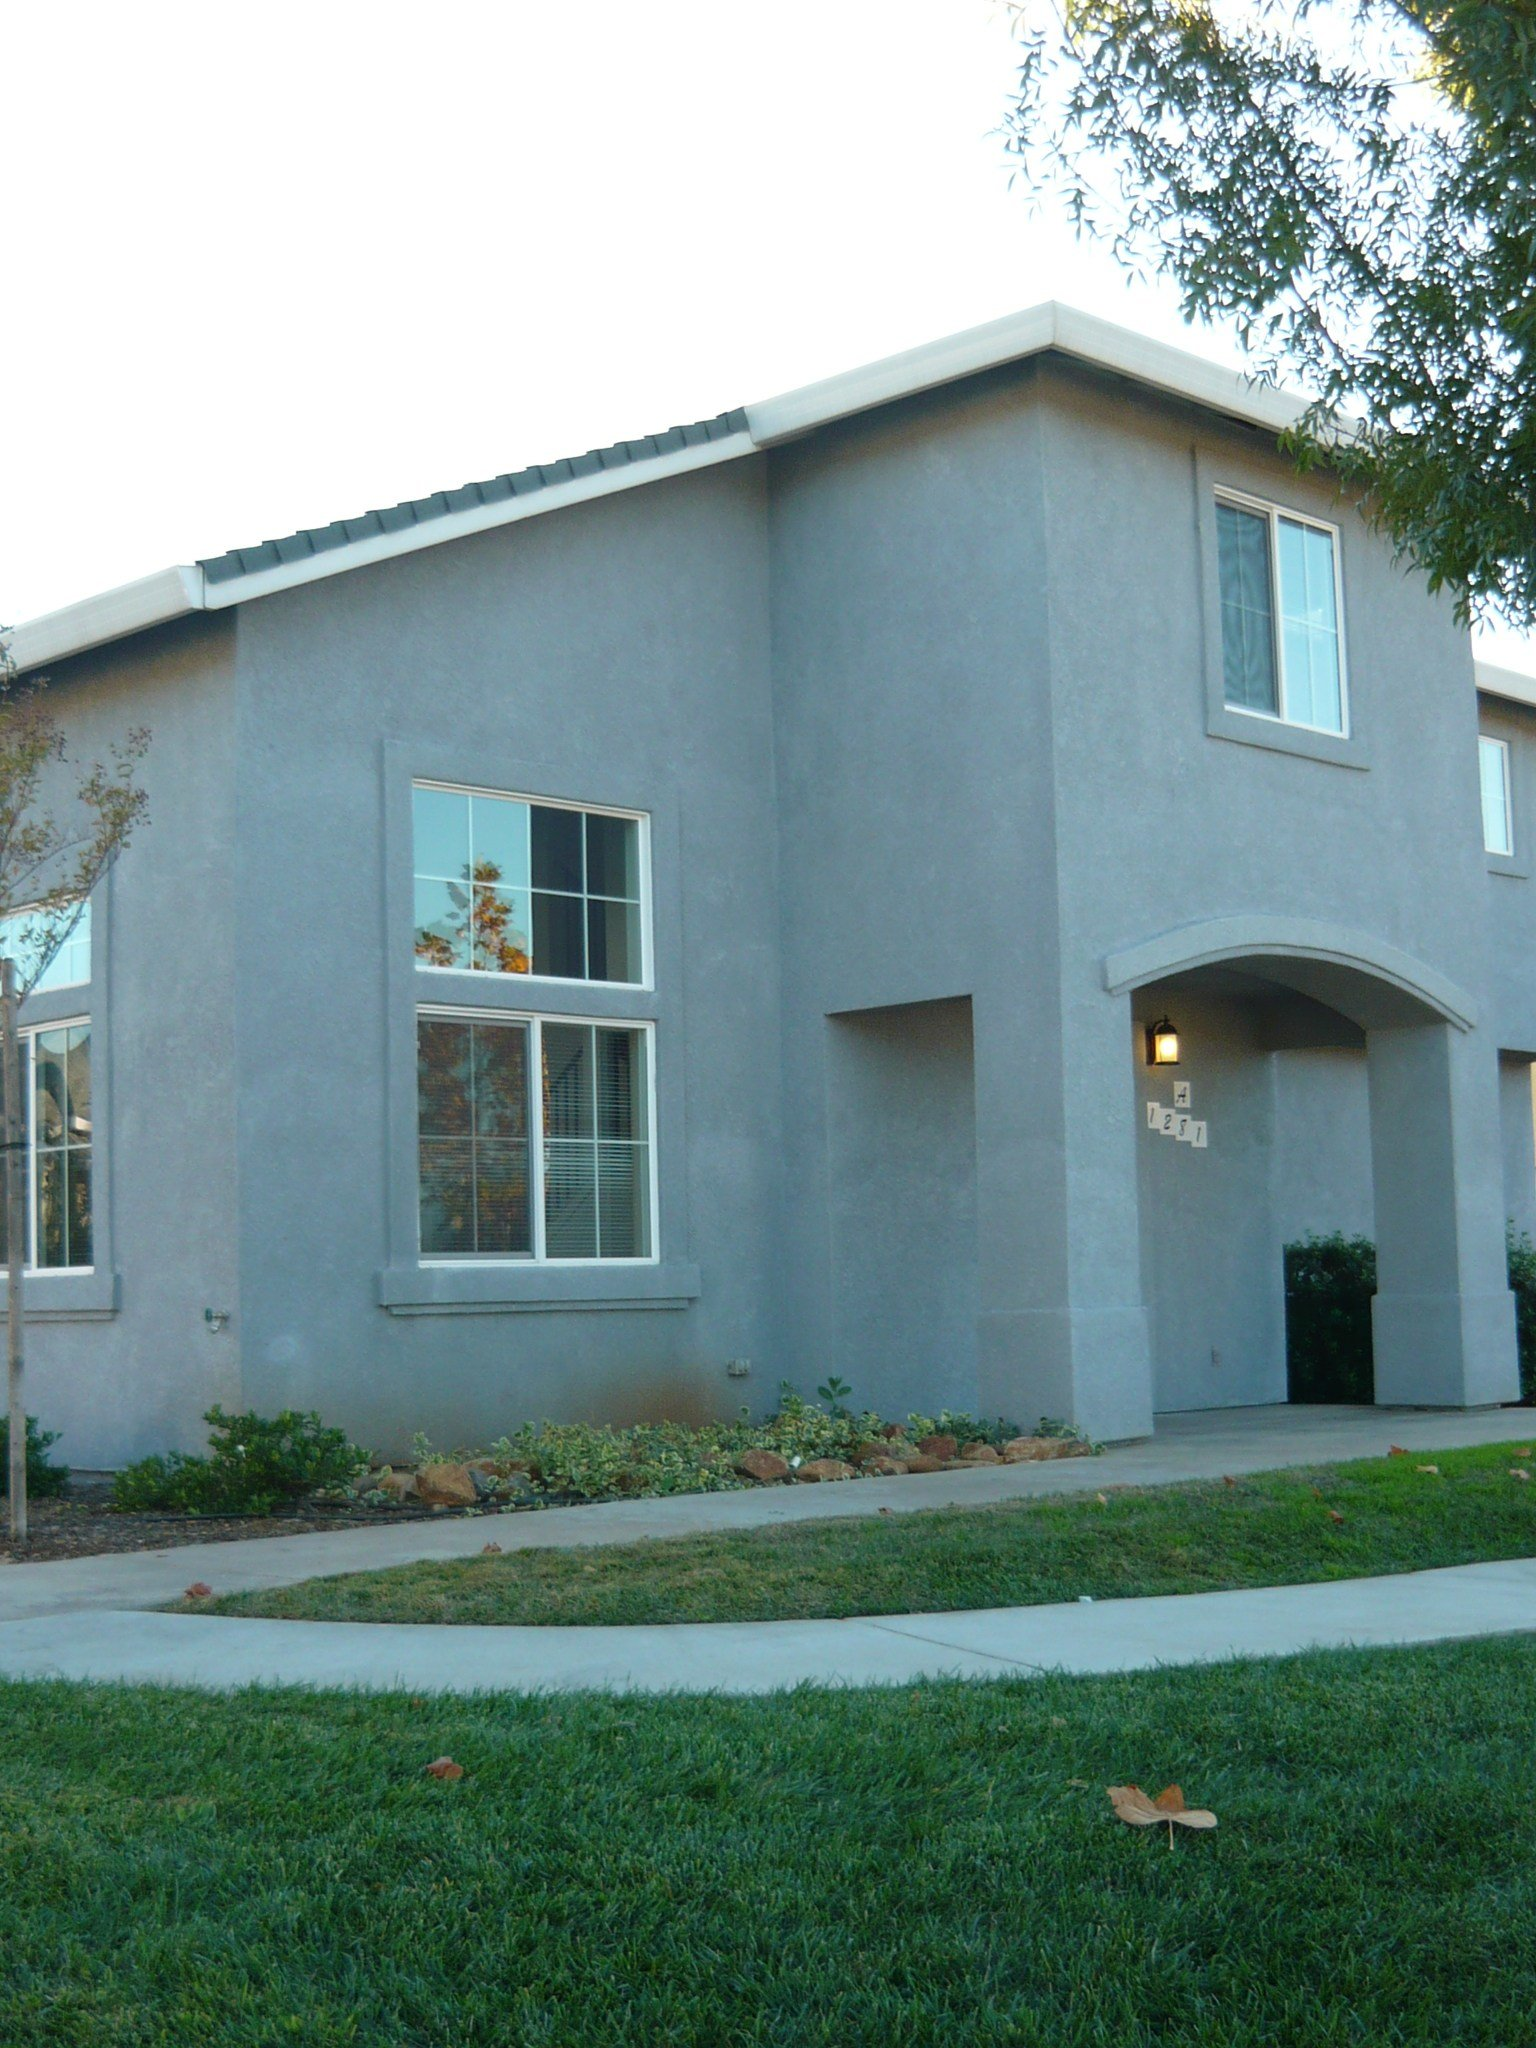 Best Reddingapartmenthomes Com Apartments Townhomes Duplexes Rentals In Redding Ca With Pictures